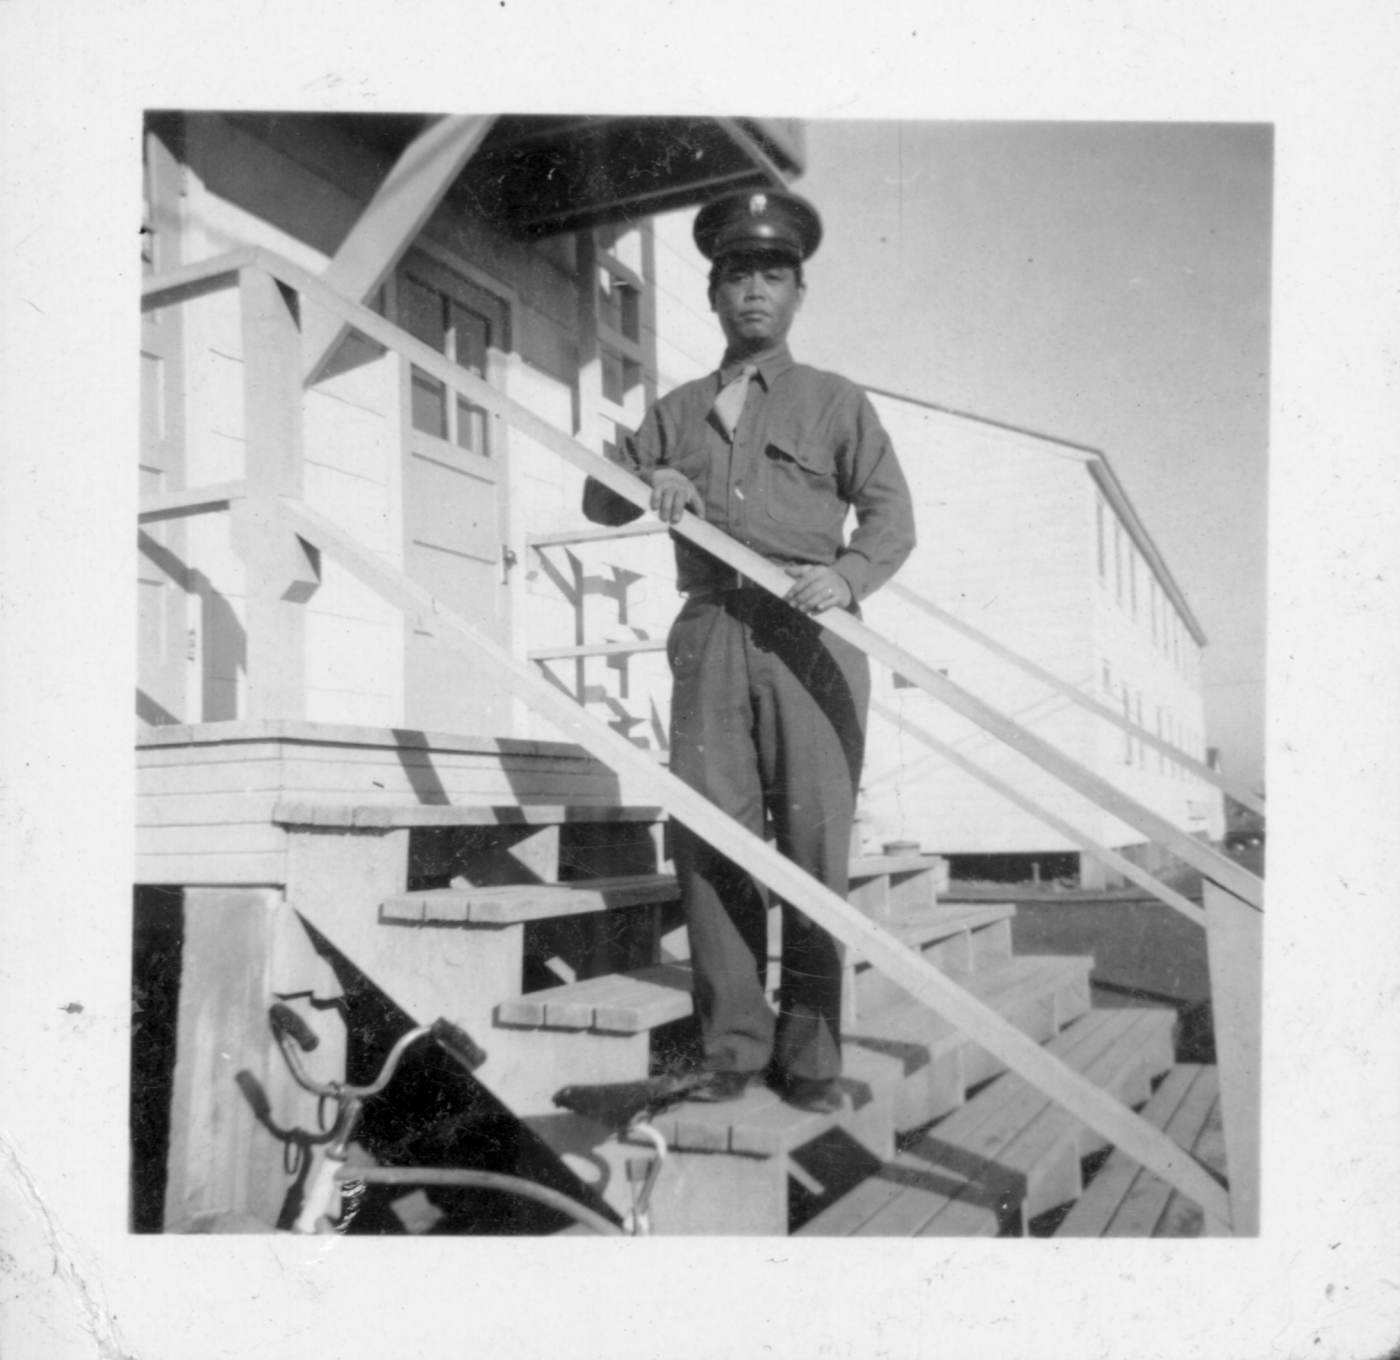 11 April 2019 Posted. Shuck Wing Chin in uniform standing on the steps to a military barracks. Museum of Chinese in America (MOCA) 111 Mott Street Collection. 身穿军装的甄灼荣站在军营的台阶上。美国华人博物馆(MOCA)勿街111号馆藏档案